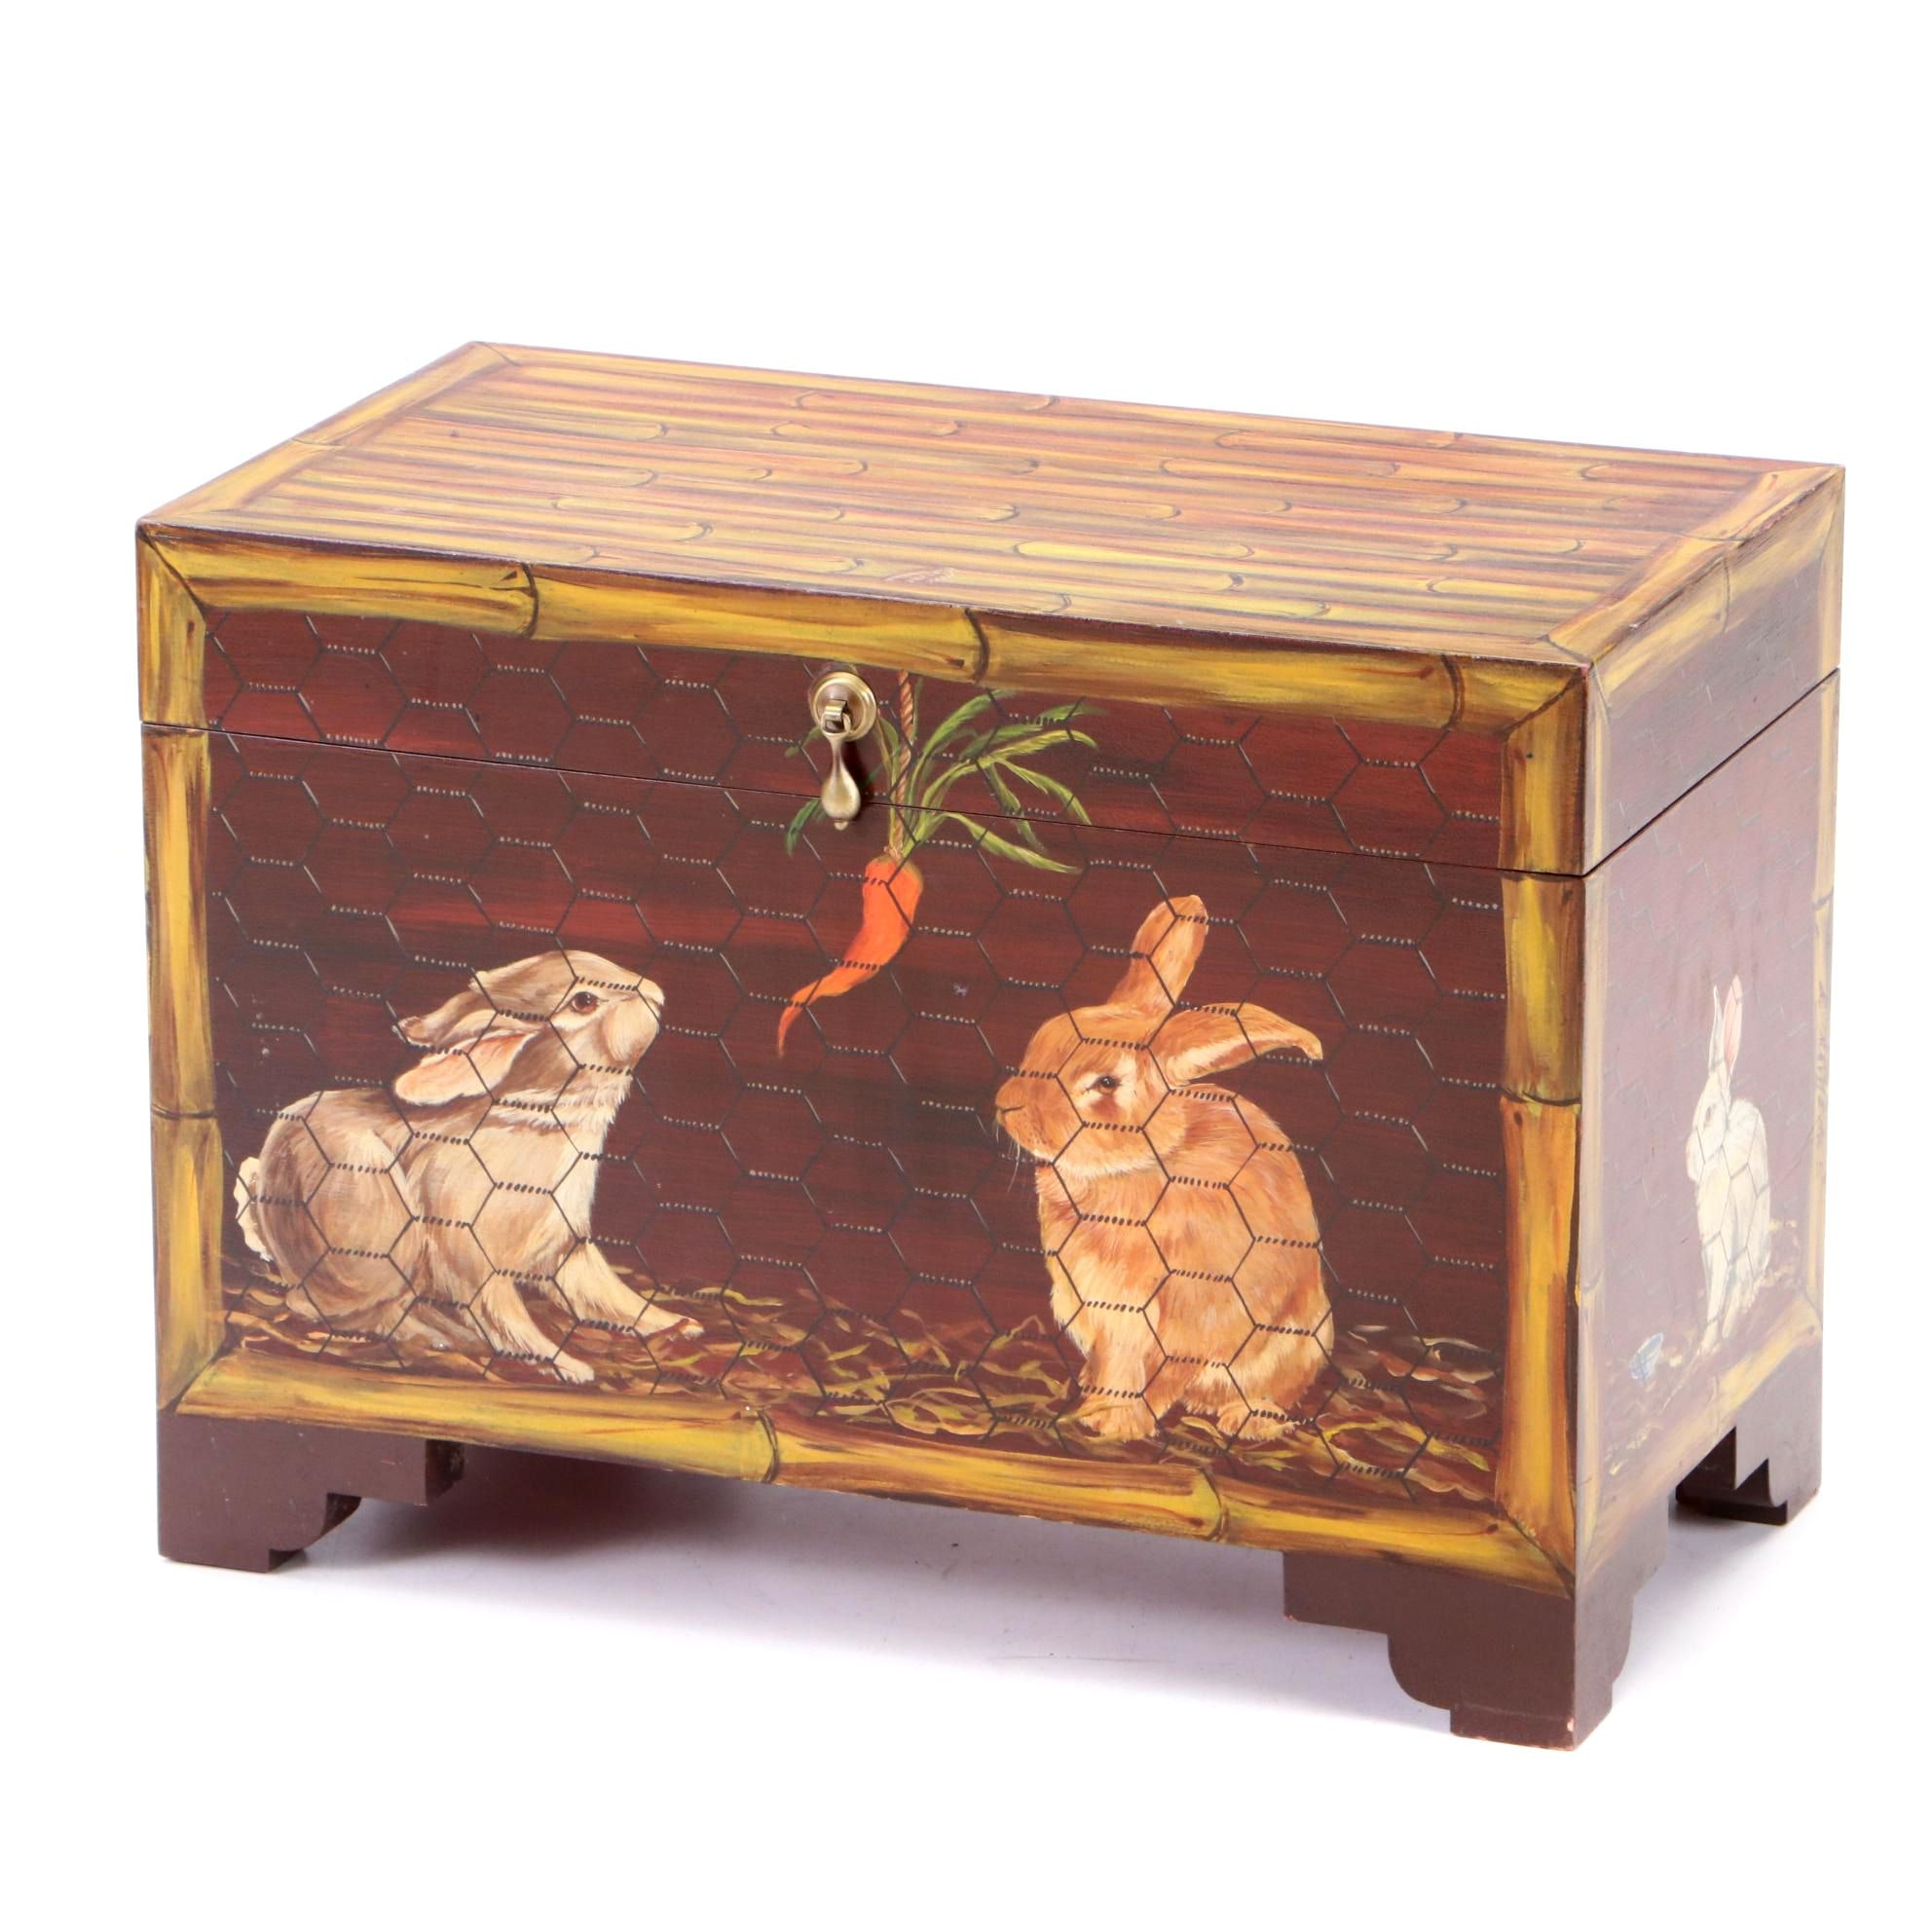 Painted Decorative Box With Rabbits by Don Andres